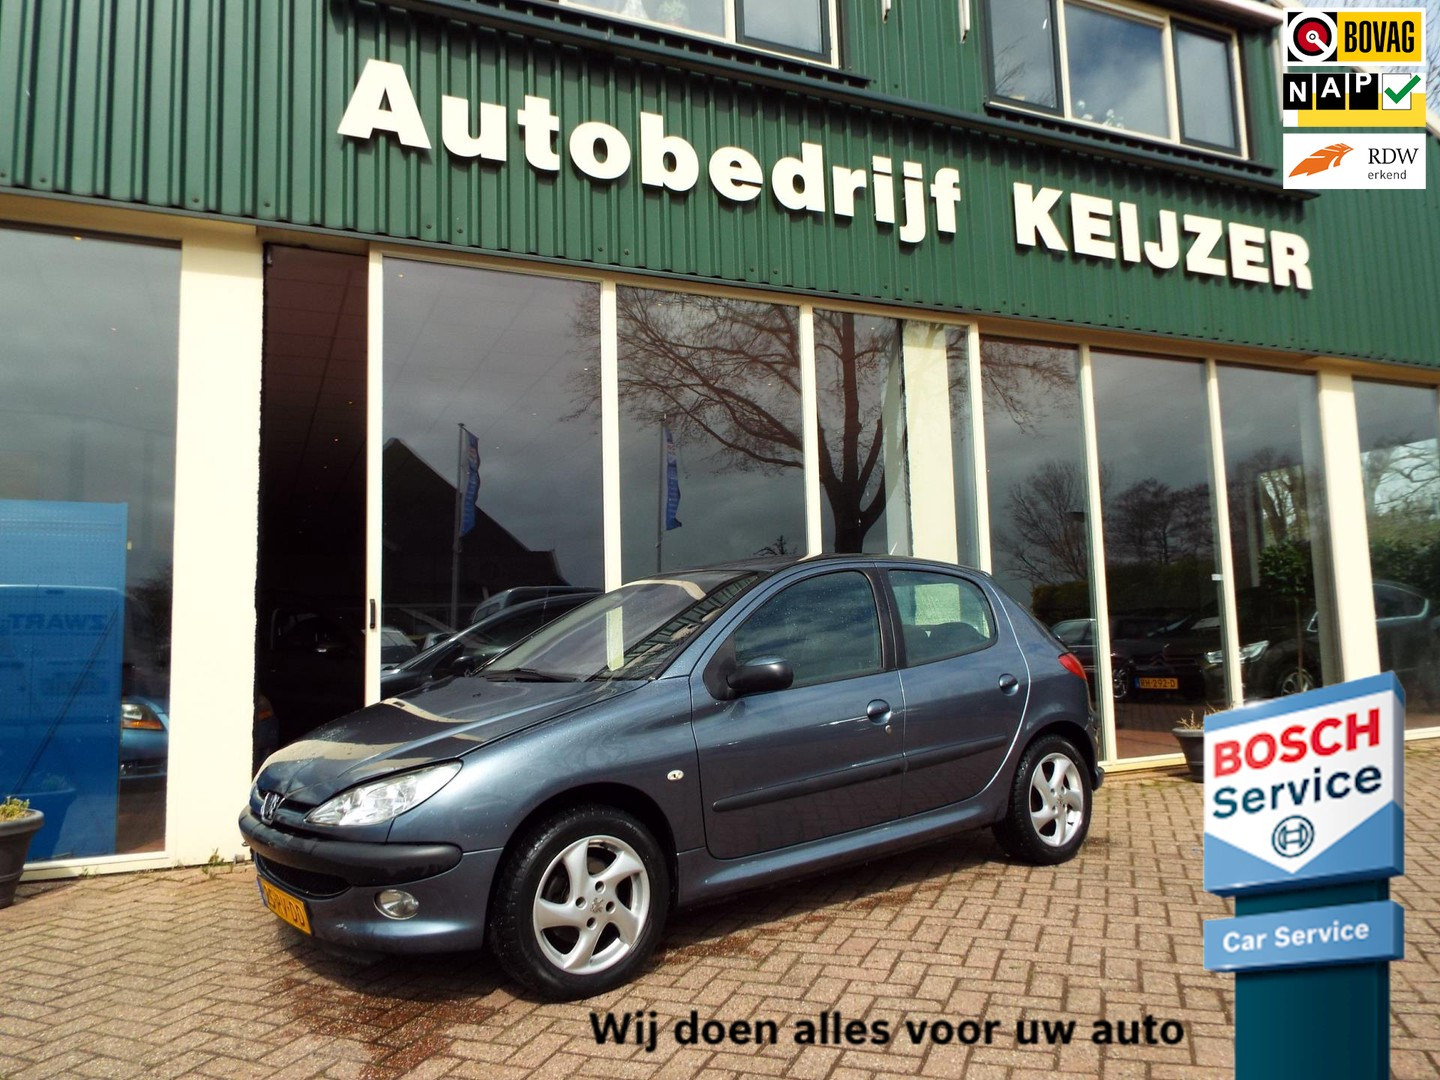 Peugeot 206 2.0 hdi gentry 5-drs-airco-apk